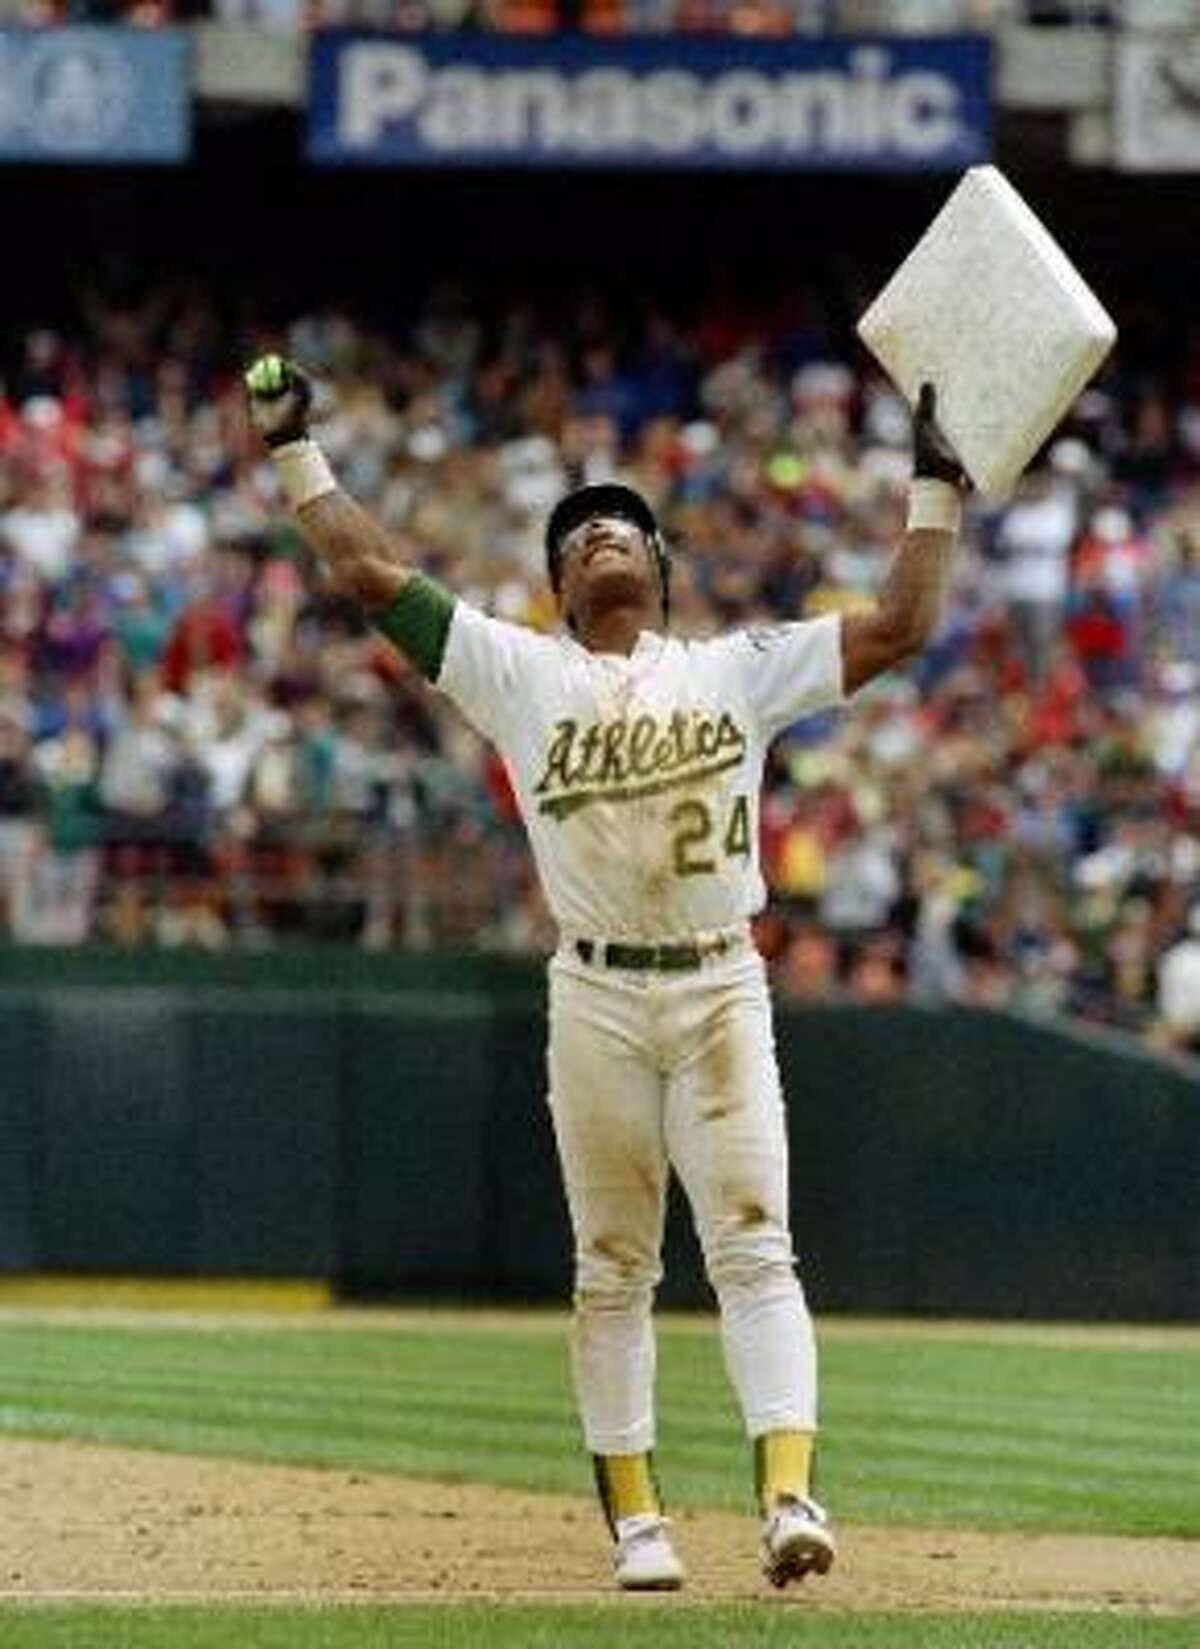 Rickey Henderson Teams: Oakland (1979-84, 89-93, 94-95, 1998); New York Yankees (1985-89); Toronto (1993), San Diego (1996-97, 2001); Anaheim (1997); New York Mets (1999-2000); Seattle (2000); Boston (2002); Los Angeles (2003). Henderson was a 10-time All-Star with .279 lifetime batting average, 3,055 hits and 297 homers. He led the American League in steals 12 times and holds the all-time record for steals with 1,406, runs scored (2,295), unintentional walks (2,129), and homers leading off games (81). Won the 1990 AL Most Valuable Player award and won World Series with 1989 Athletics and 1993 Blue Jays.